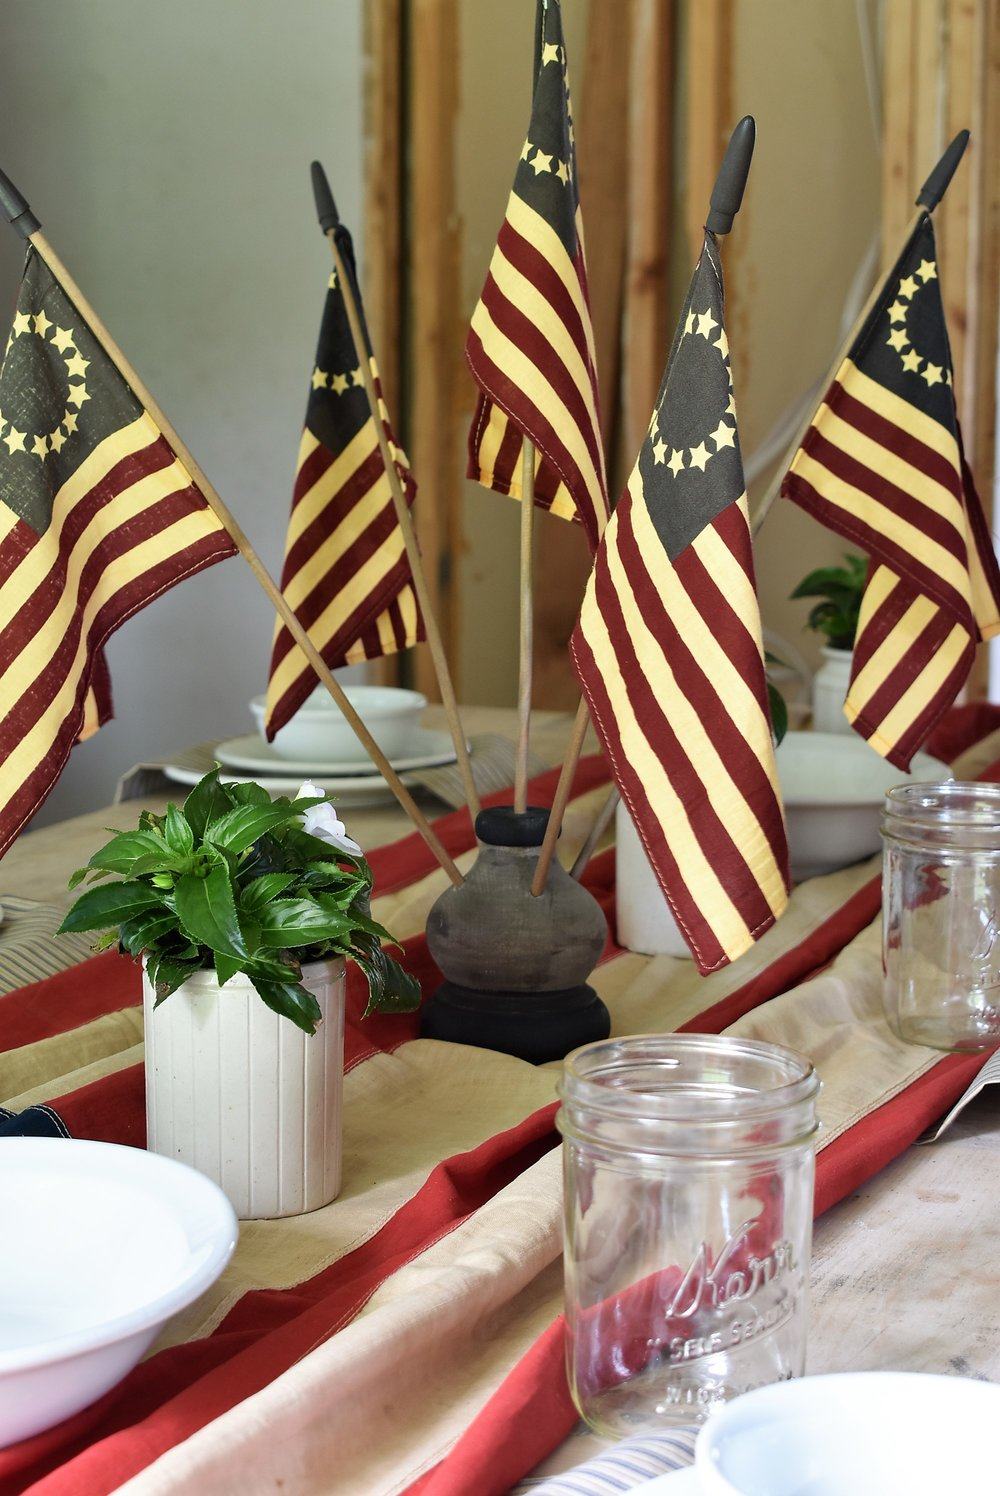 Red White and Blue Tablescape for July 4th Farmhouse Style Independence Day